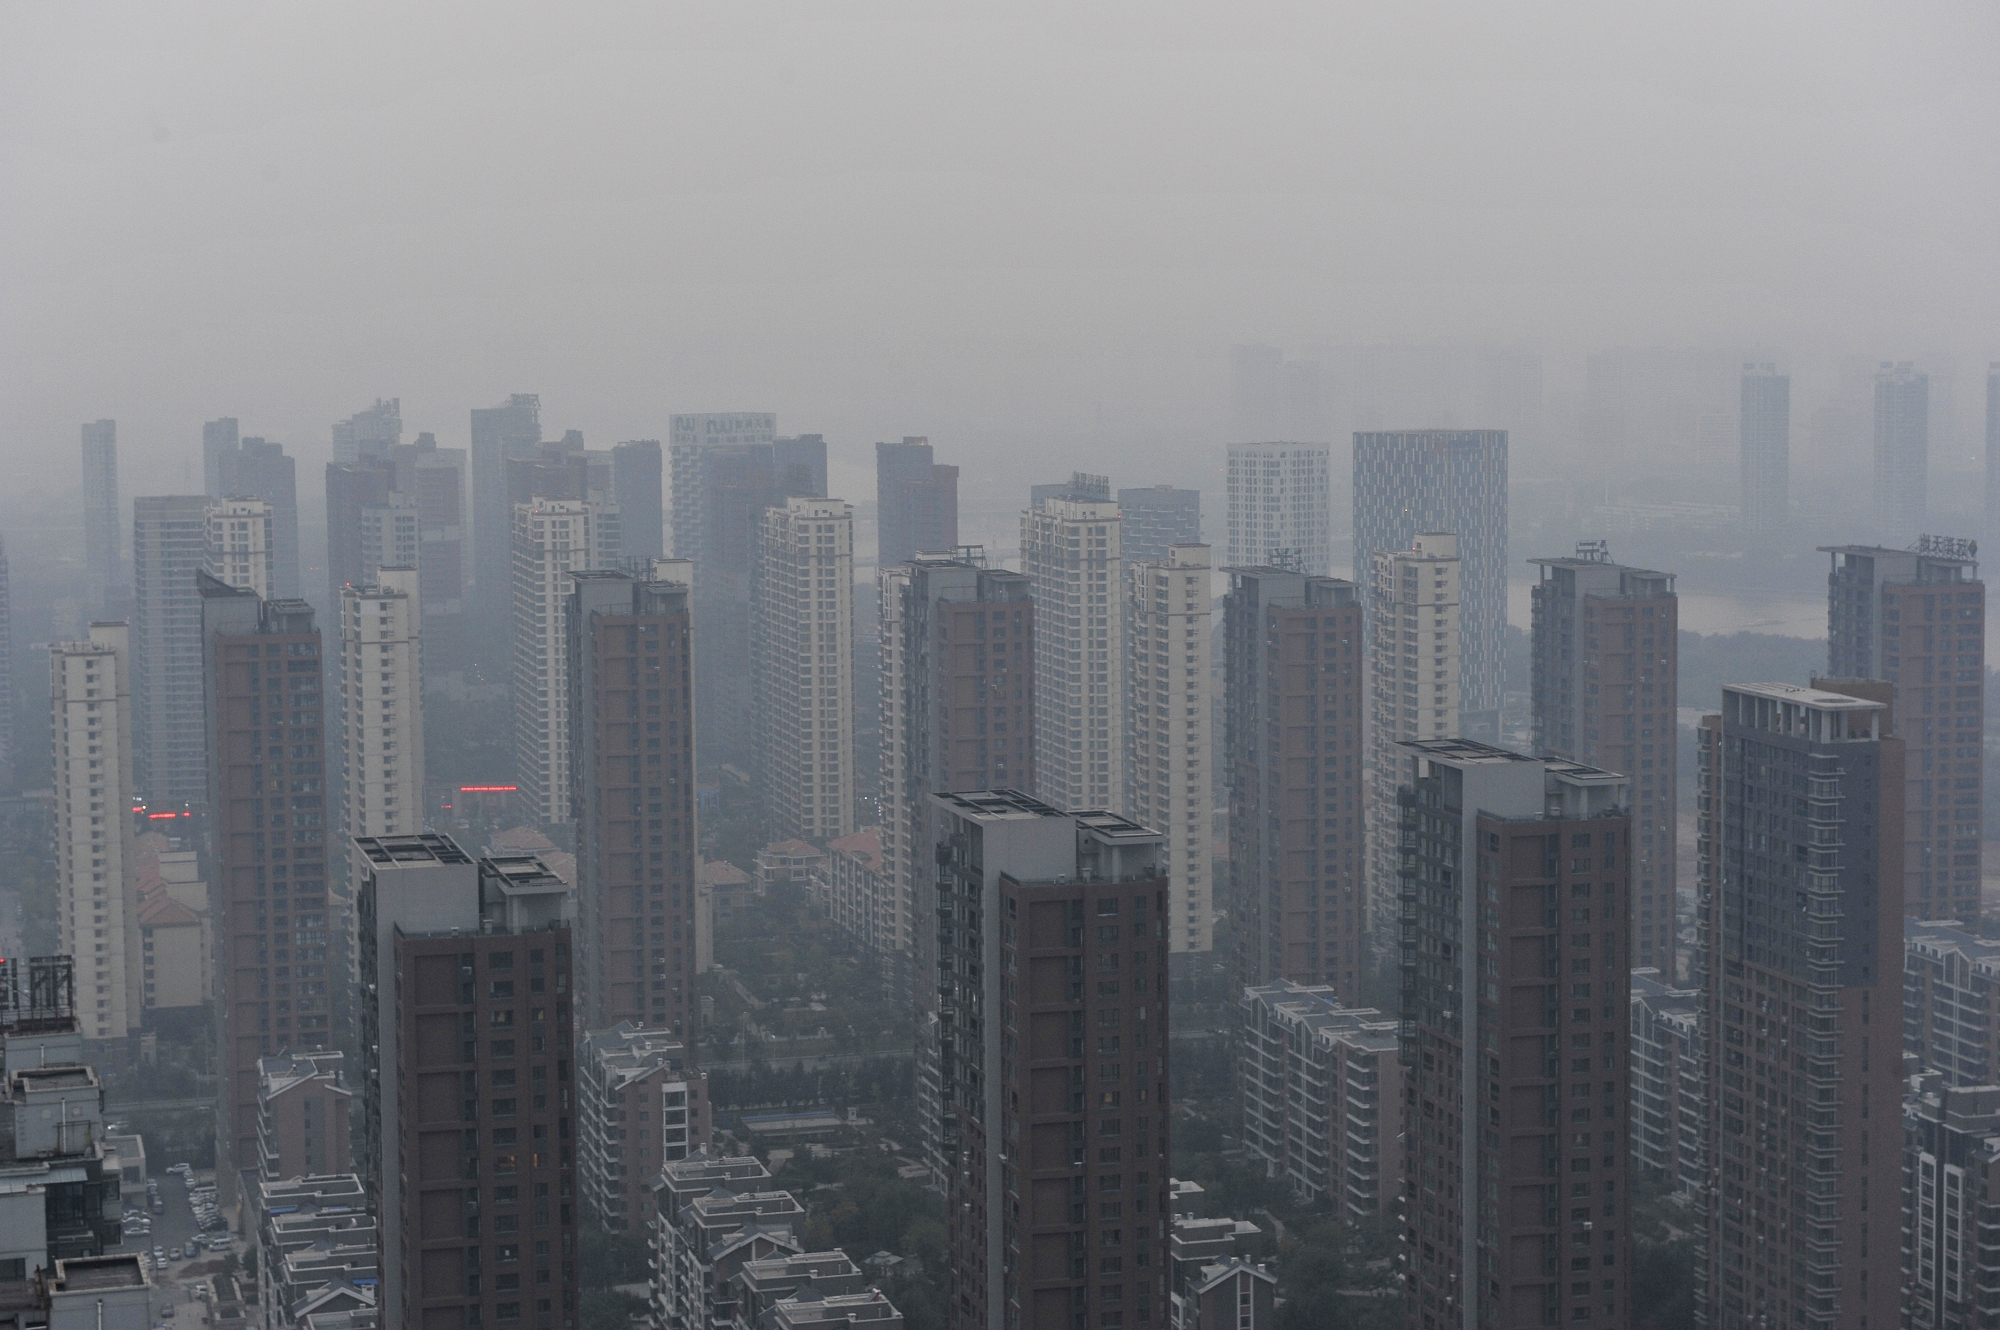 High-rise residential buildings are seen in heavy smog in Shenyang city, northeast China's Liaoning province on Oct. 8, 2014.